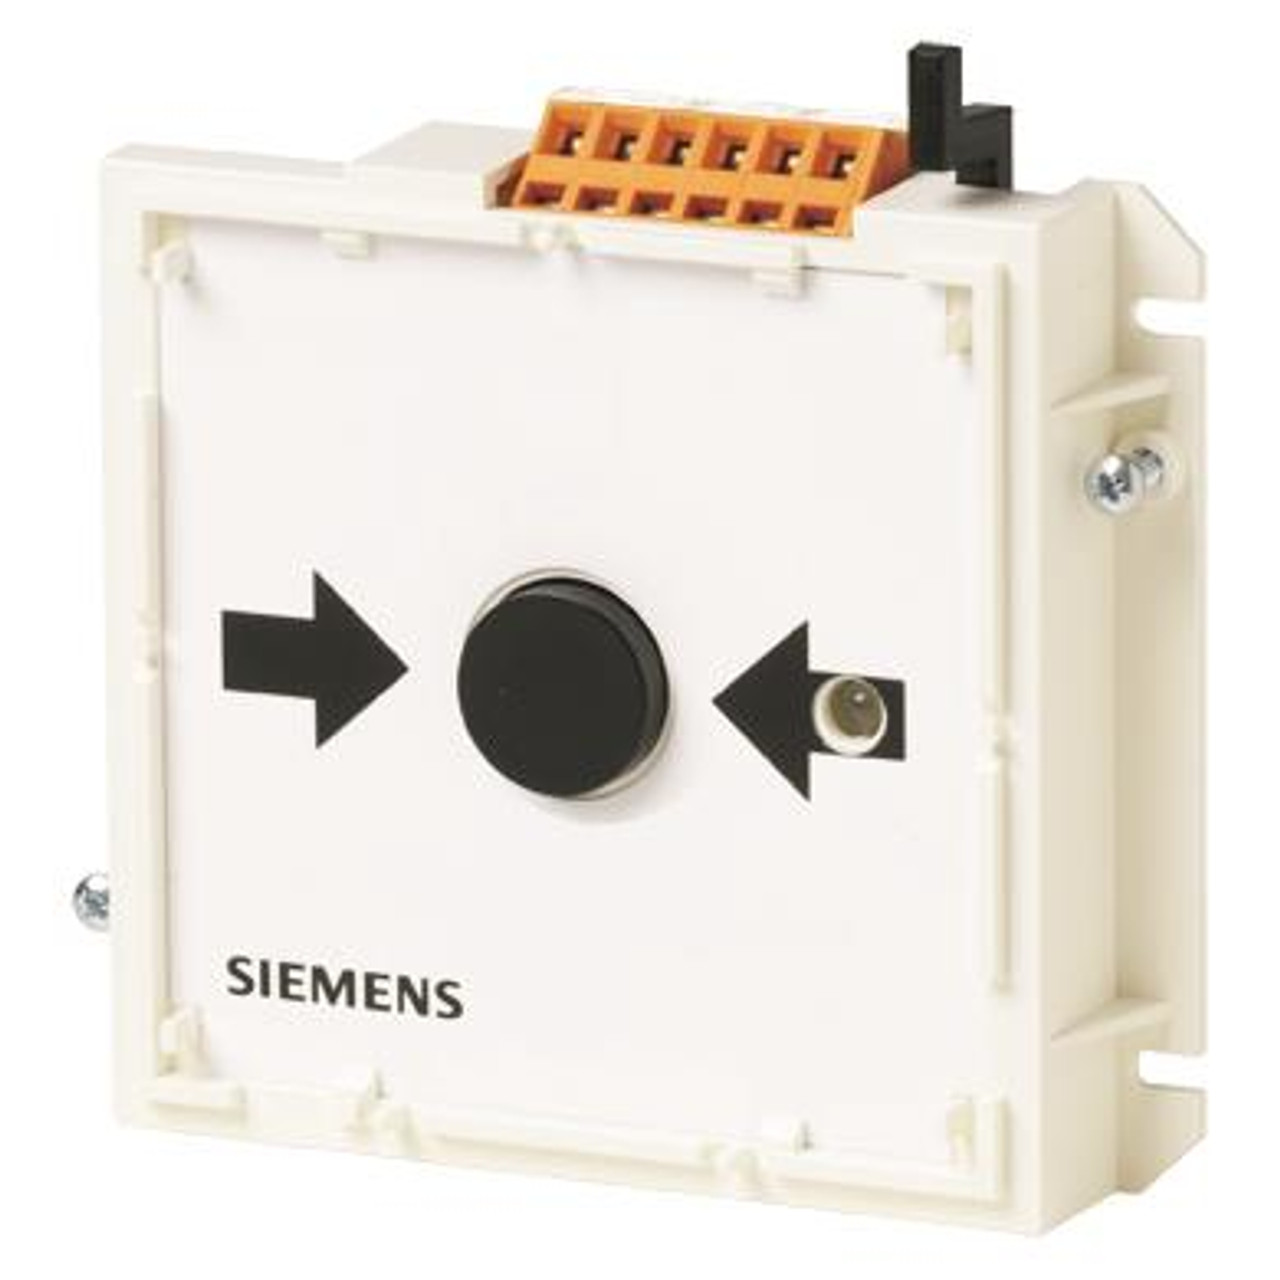 Siemens FDME224, A5Q00009392 Switching unit with